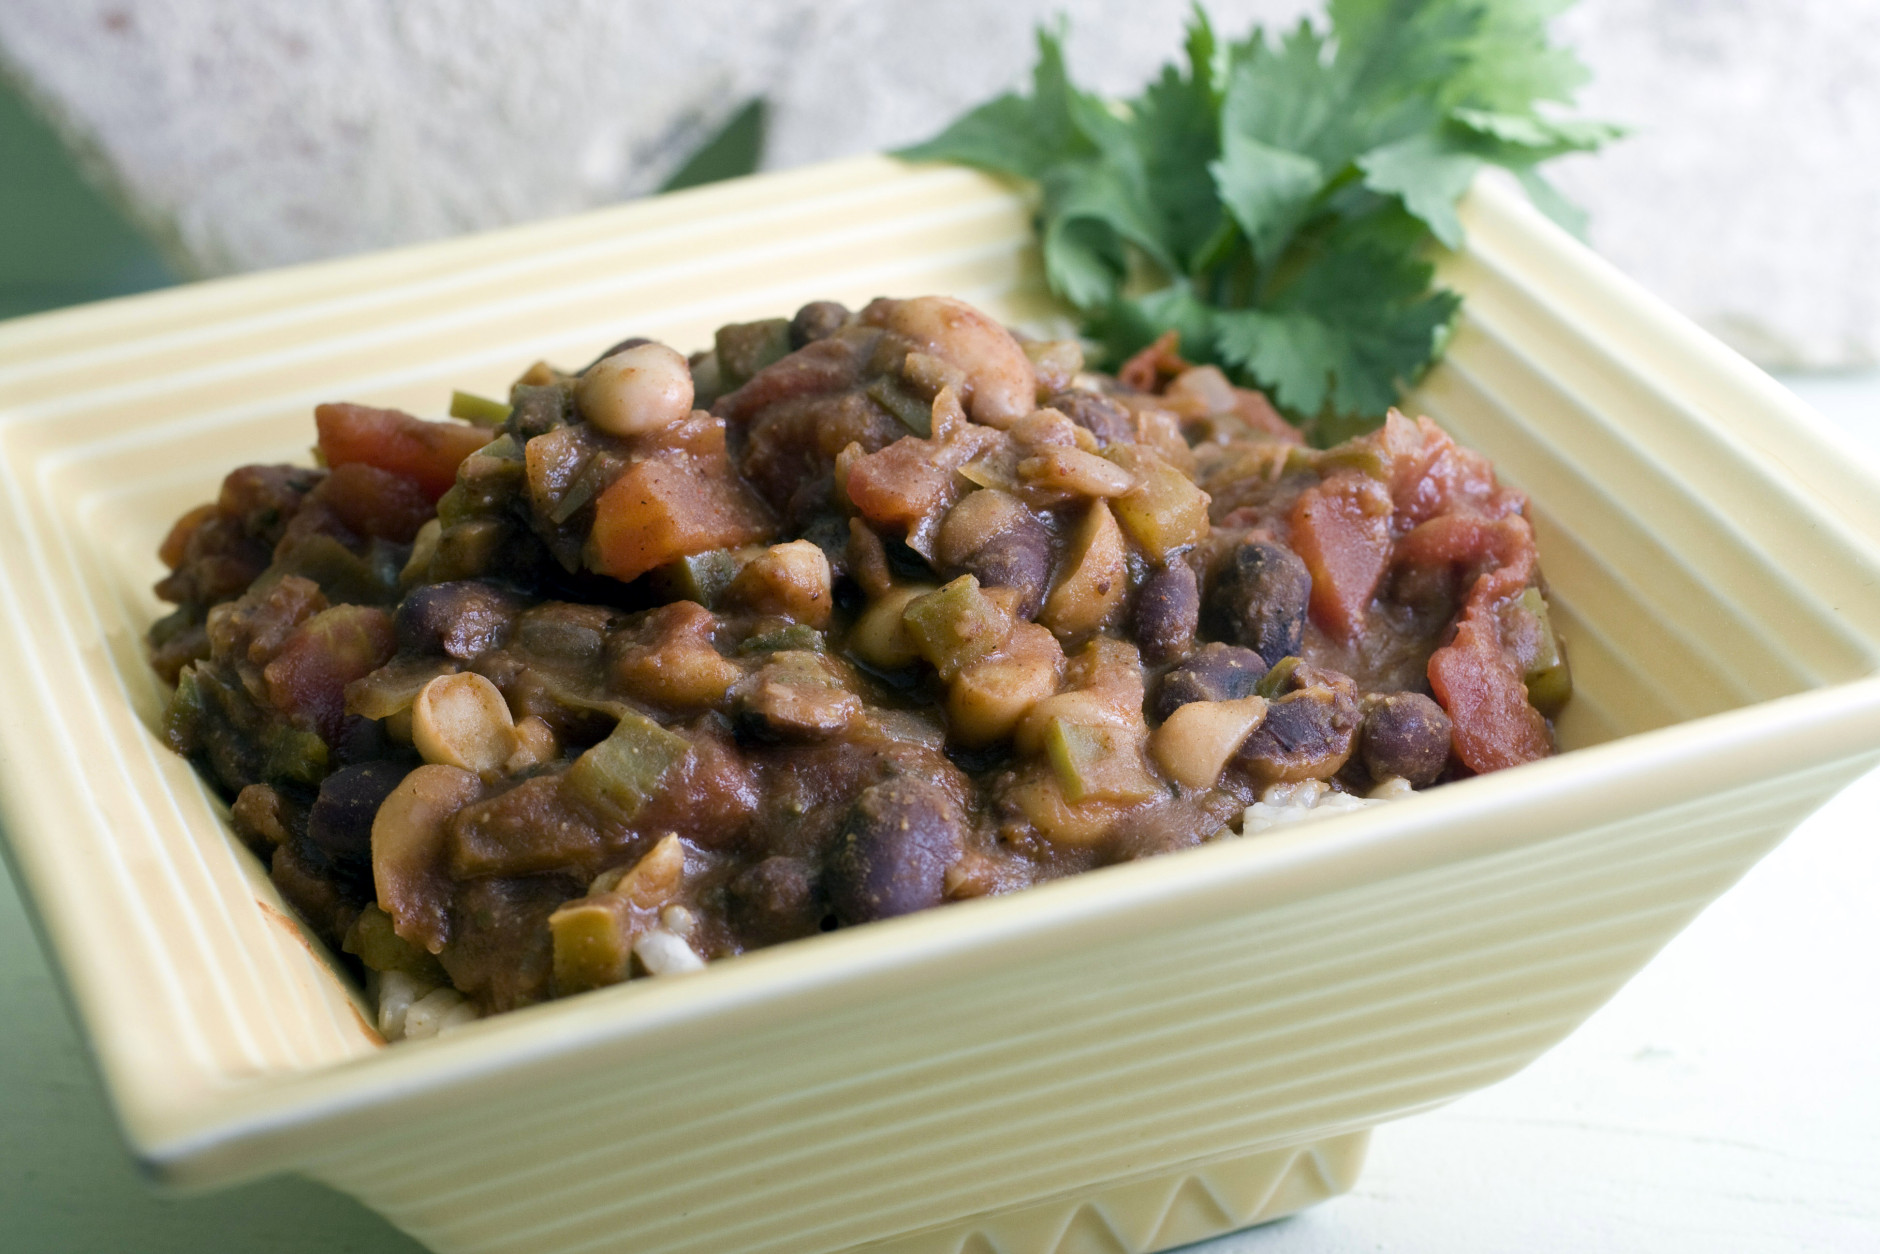 **FOR USE WITH AP LIFESTYLES**   Mixed Bean Chili and Brown Rice is seen in this Sunday, Dec. 7, 2008 photo.  Mixed Bean Chili and Brown Rice is not only a healthy meal, taking advantage of high fiber, low-fat beans, but is also economical while being filling. (AP Photo/Larry Crowe)